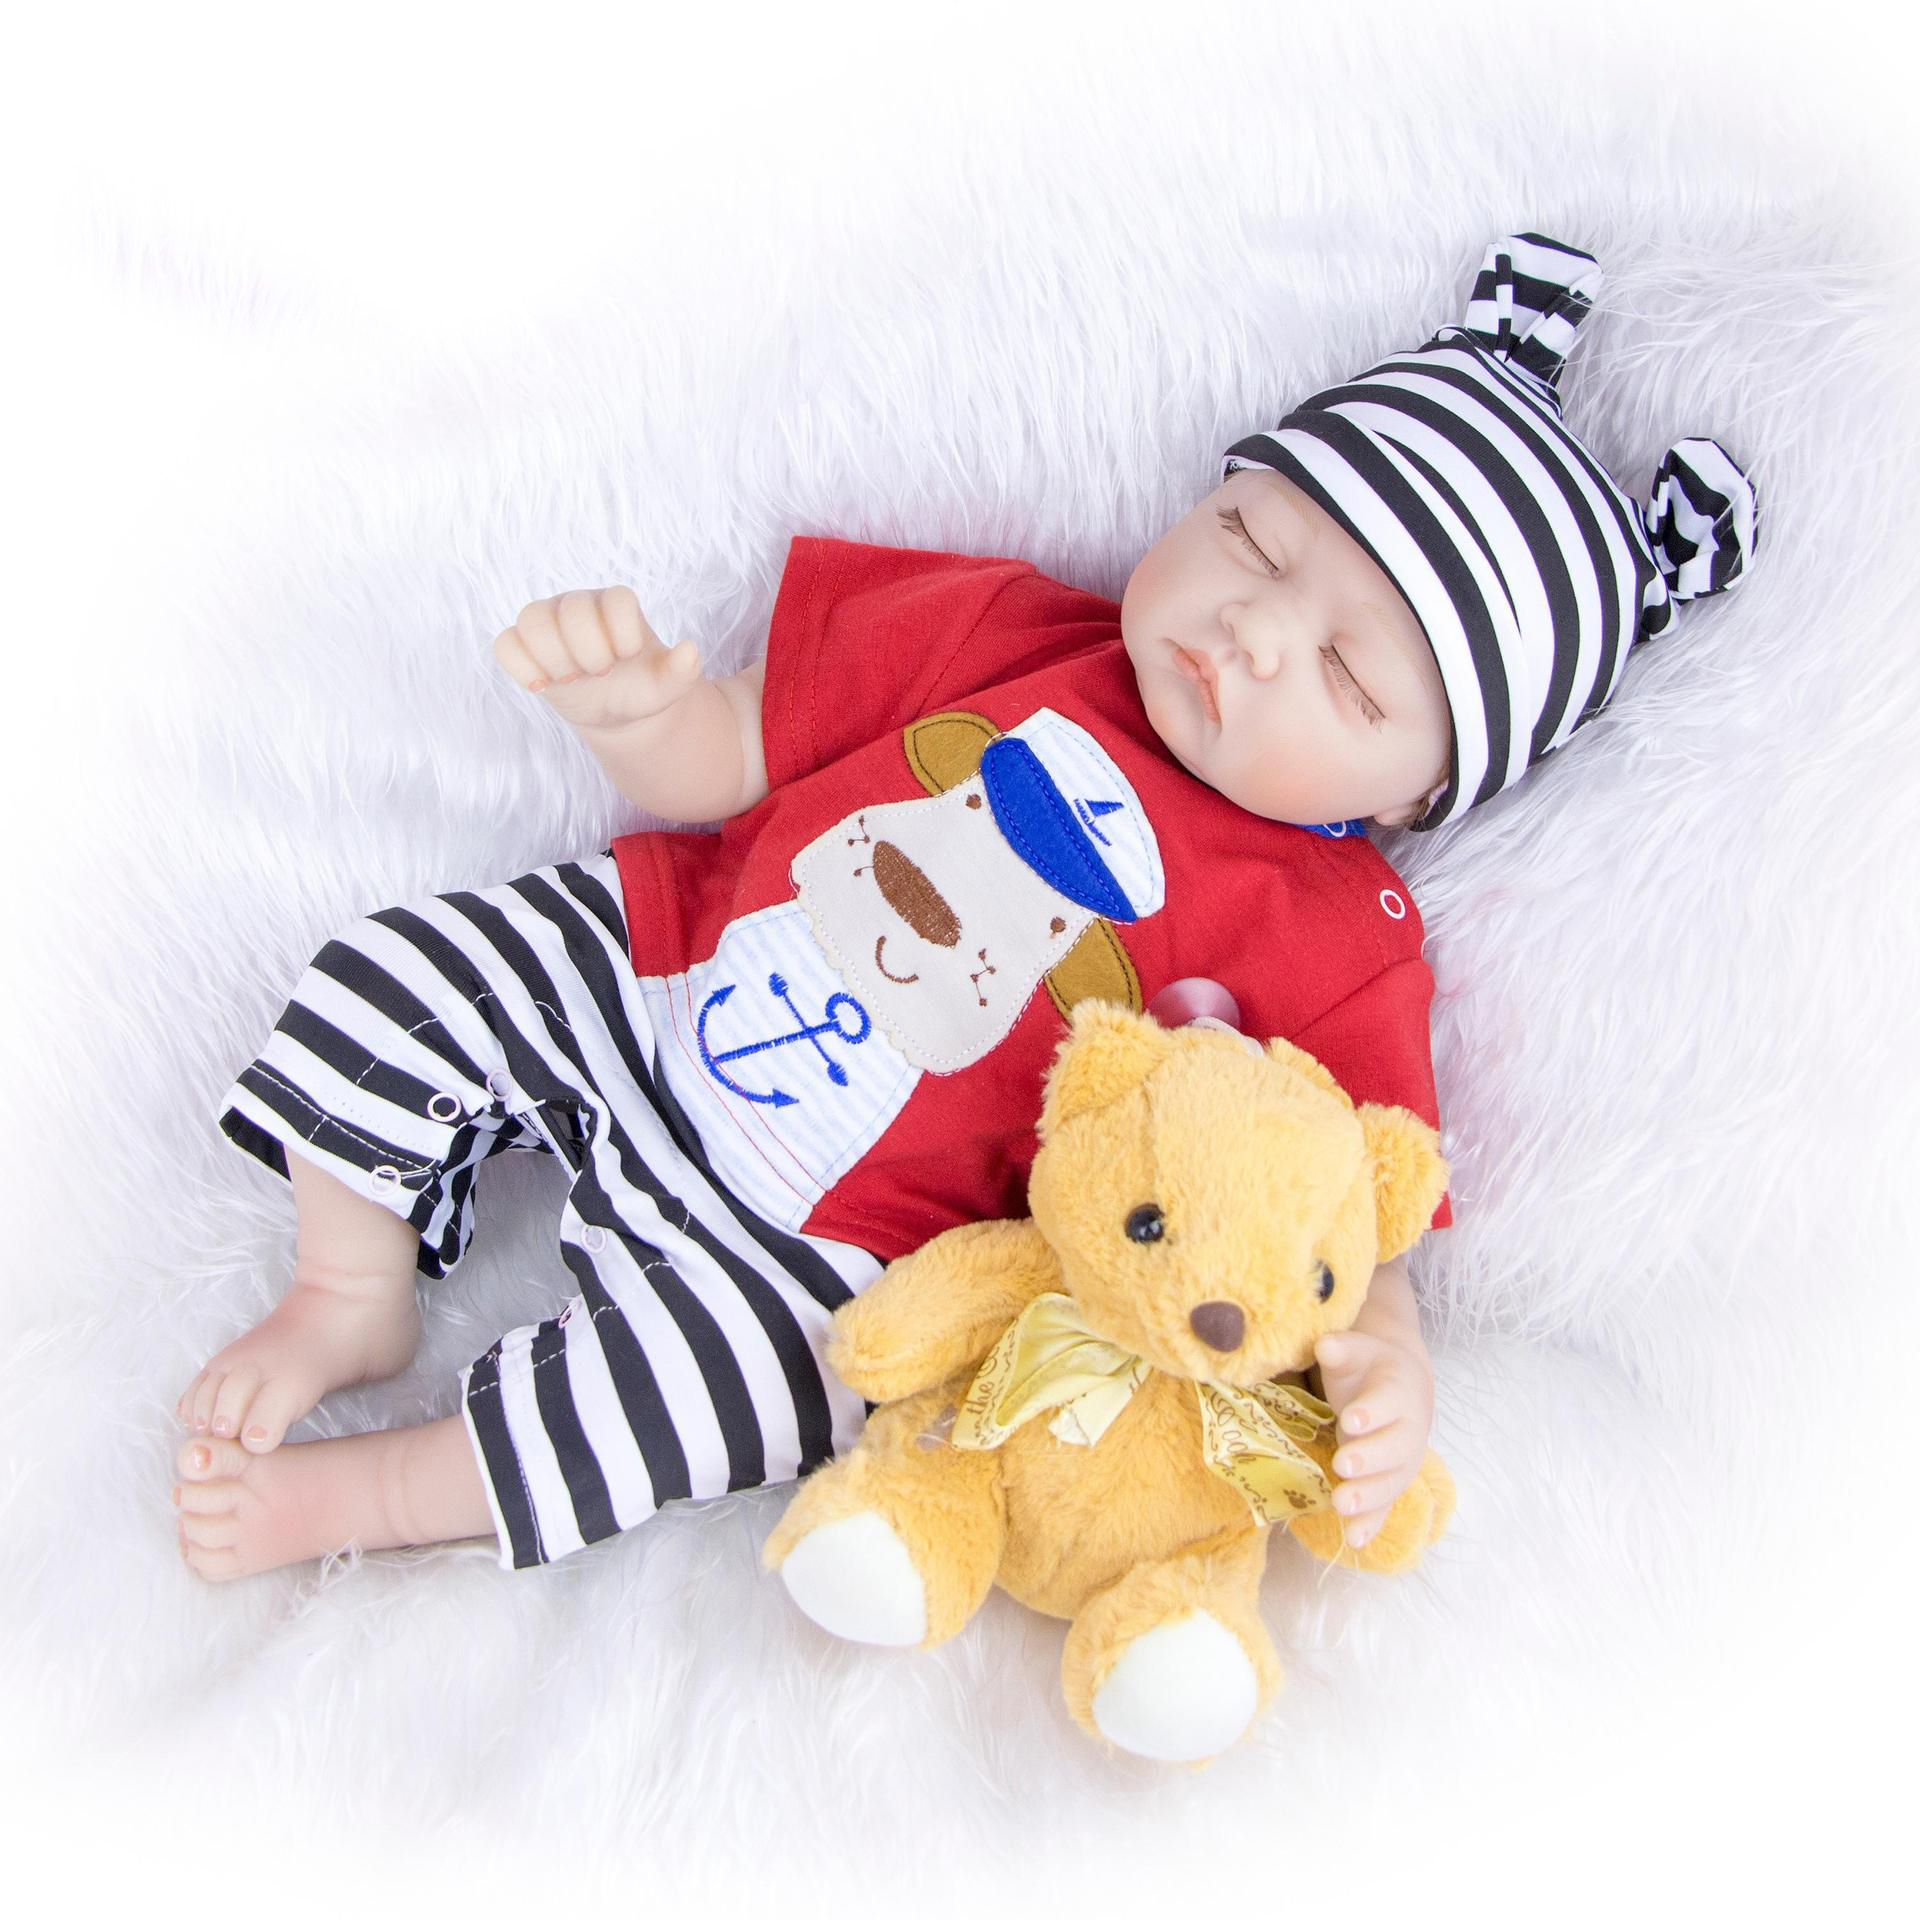 22 Inch 55 cm doll reborn Collection Handmade Realistic Silicone sleeping newborn baby real Alive child